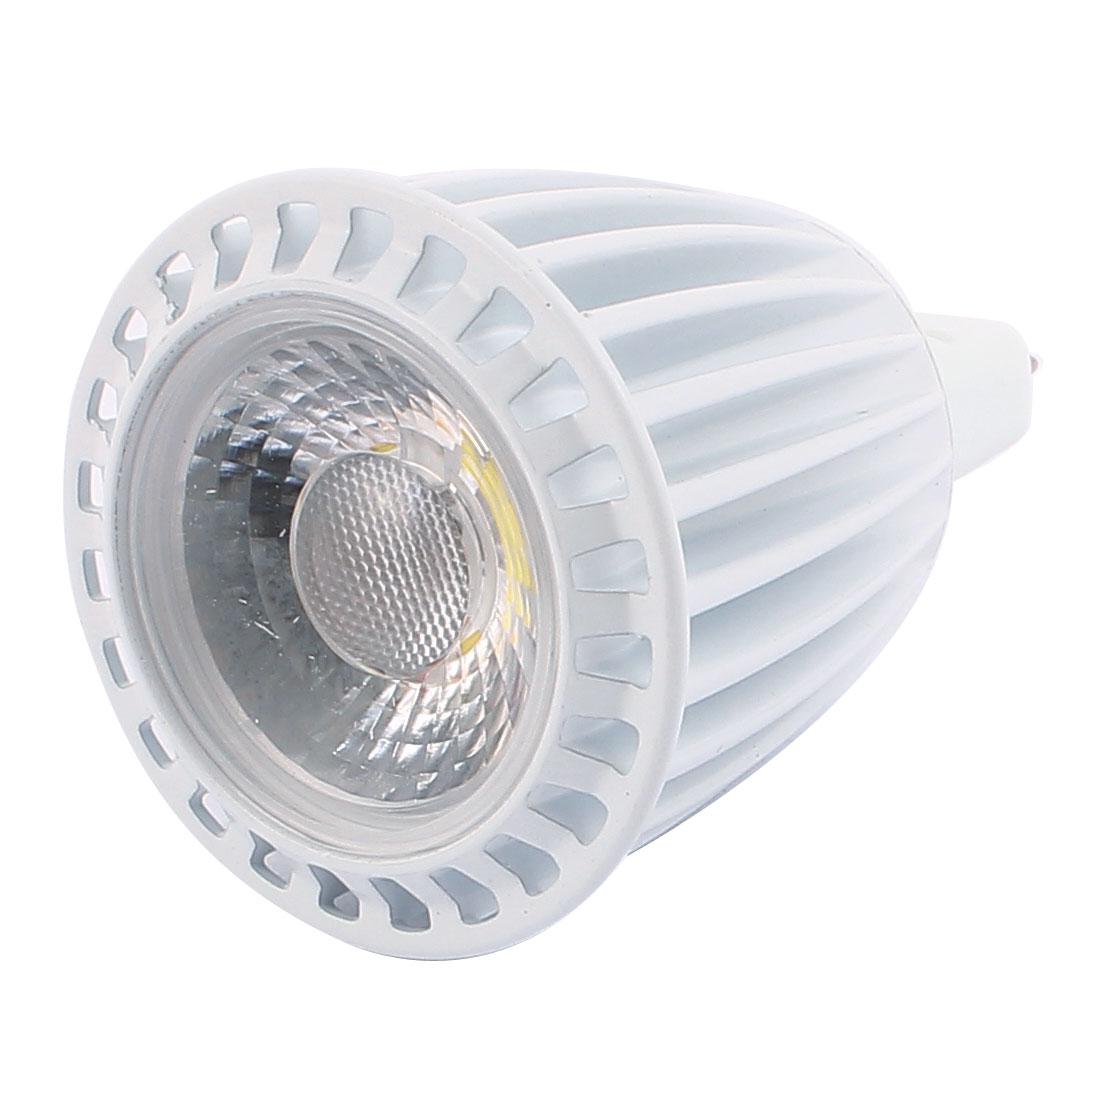 DC12V 7W Ultra Bright MR16 COB LED Spotlight Lamp Bulb Downlight Pure White